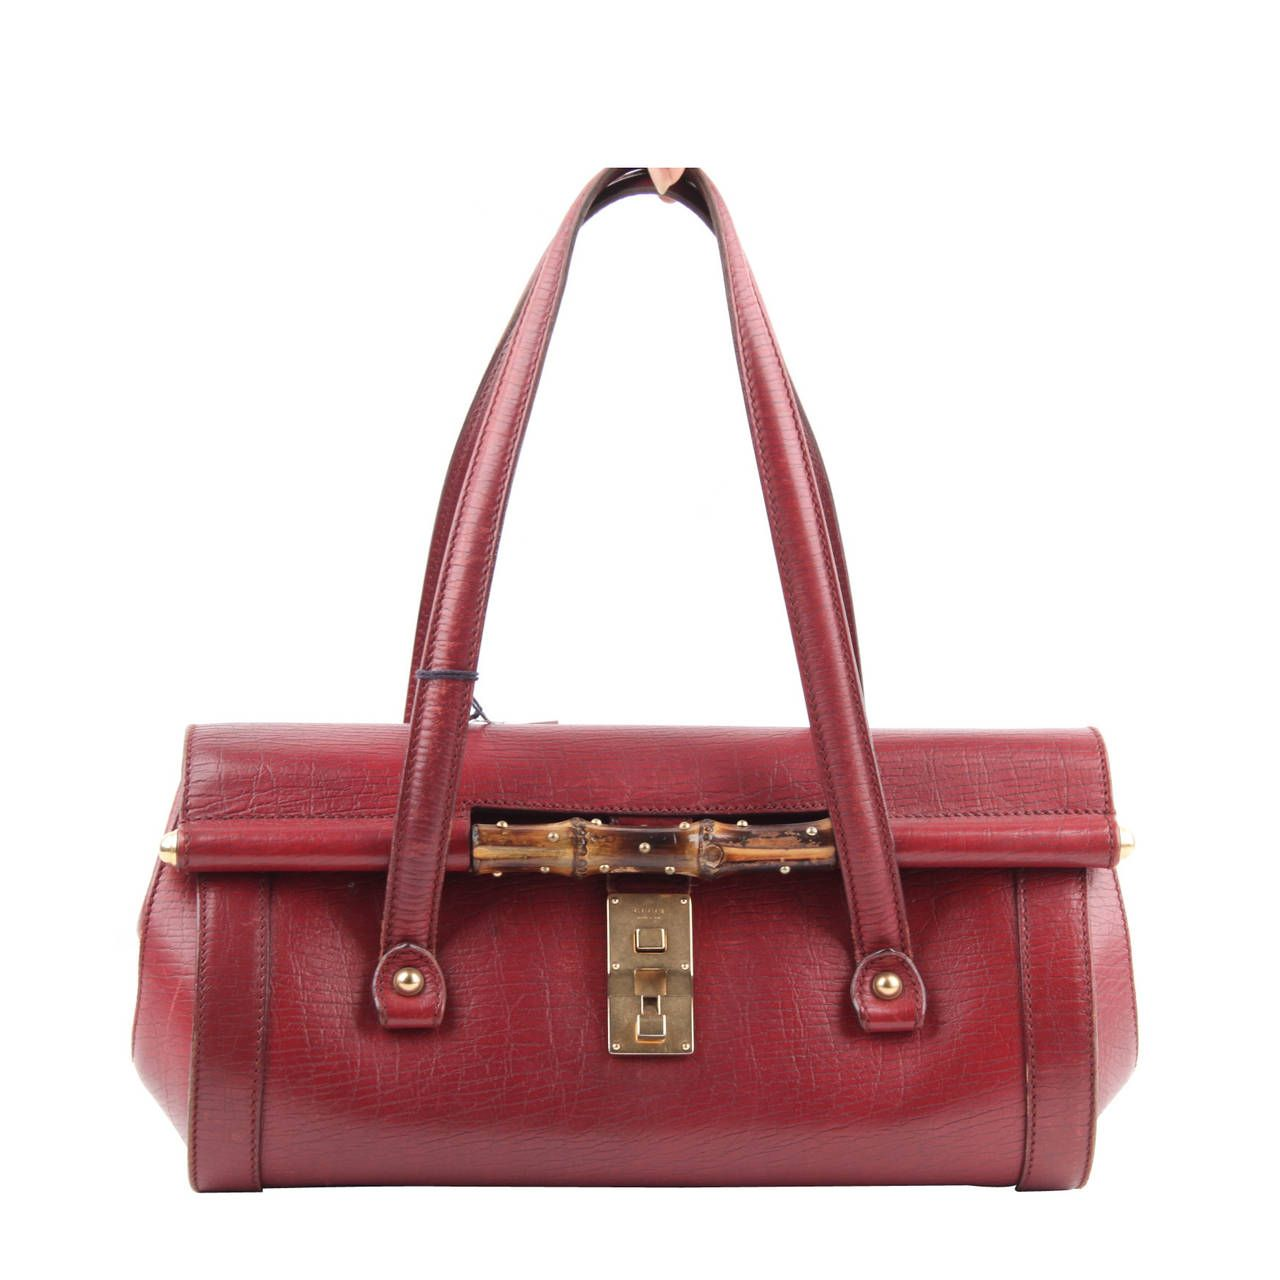 3e4bde0c5532 GUCCI Burgundy Leather BULLET BAG Handbag TOM FORD ERA Satchel w/ BAMBOO |  From a